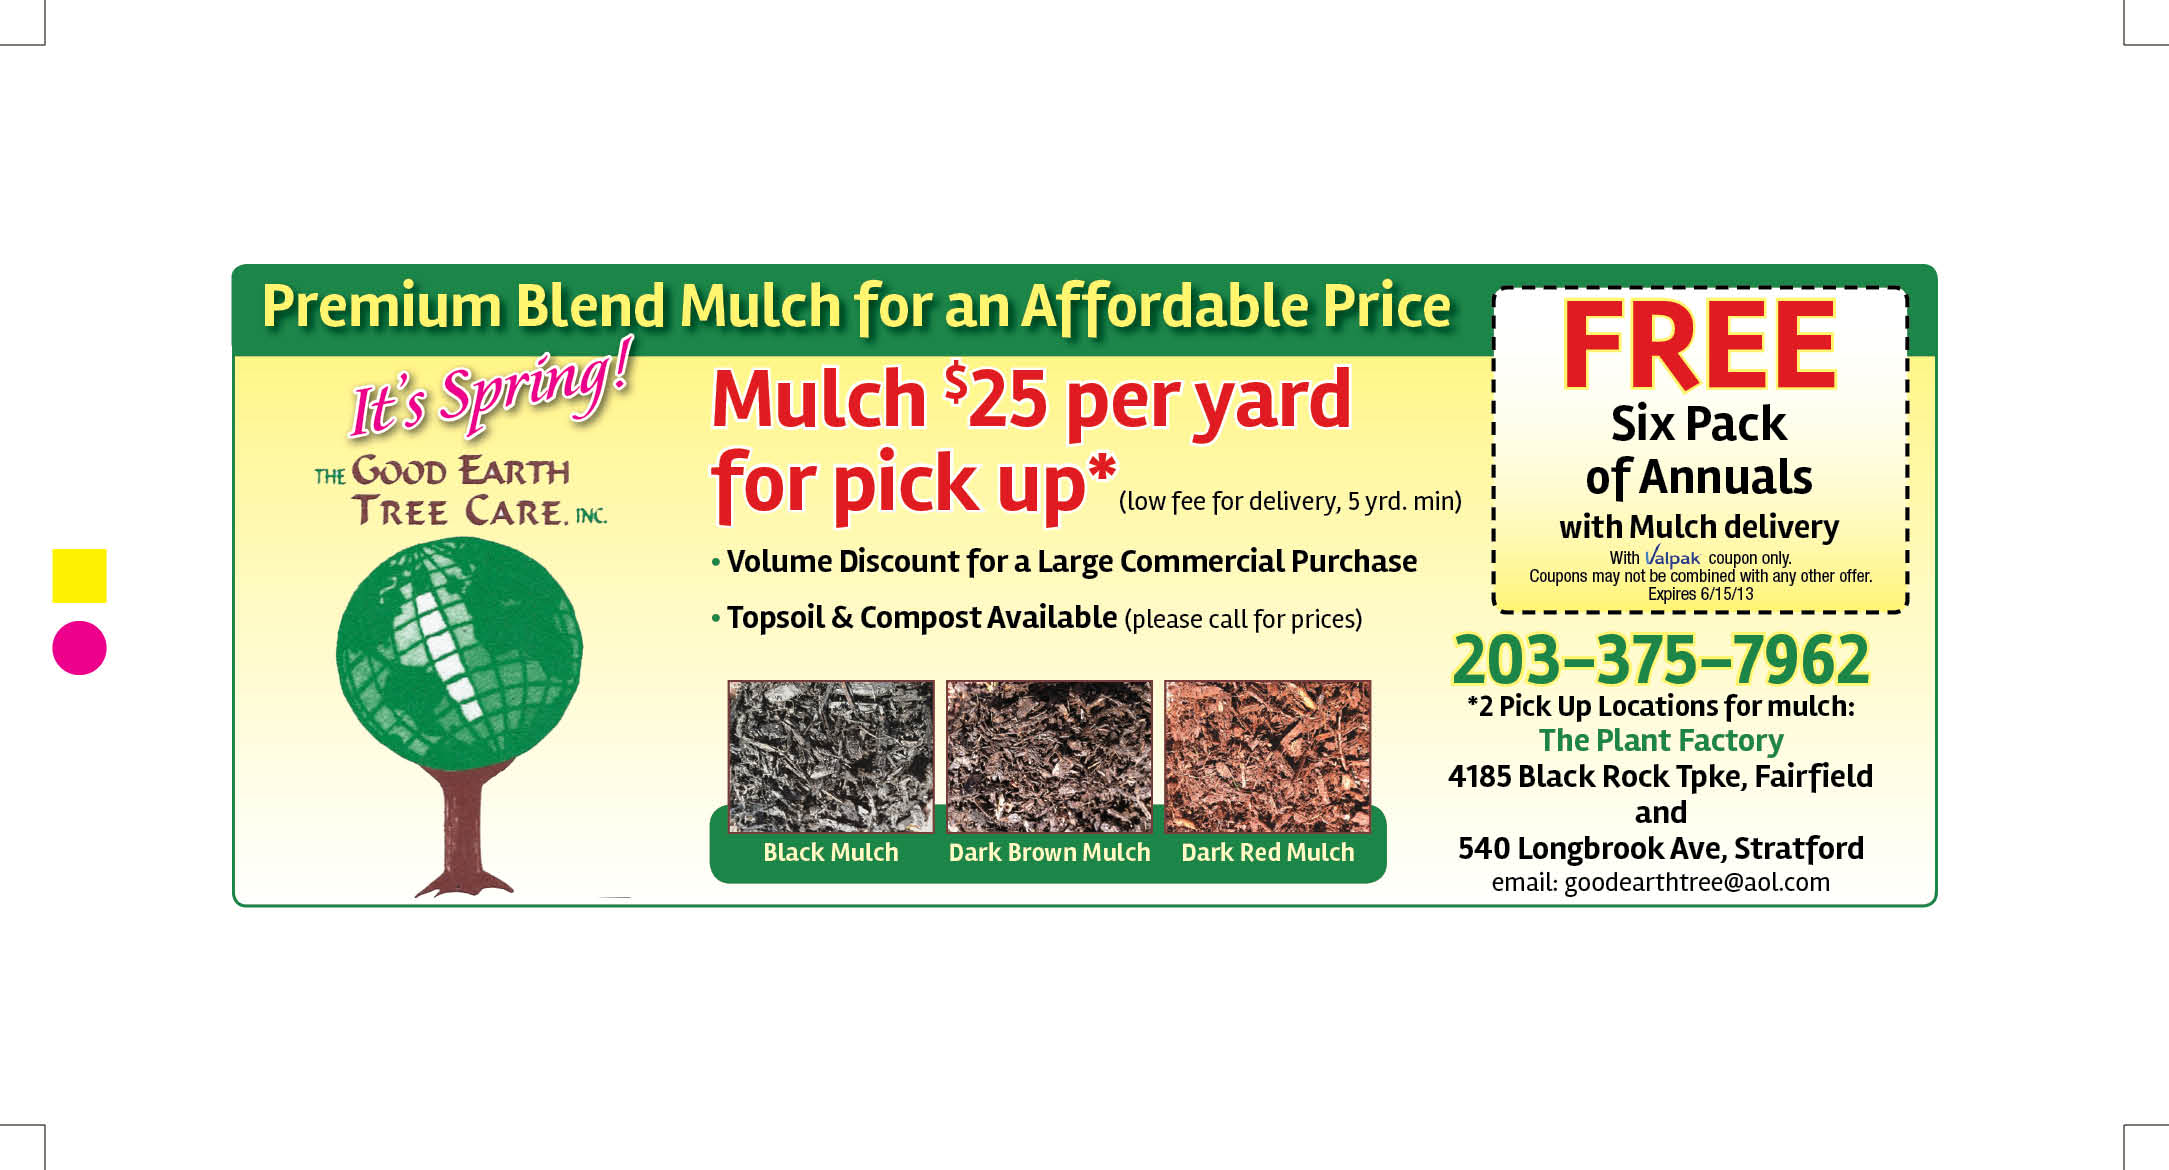 Home bulk mulch top soil compost for Gardening naturally coupon